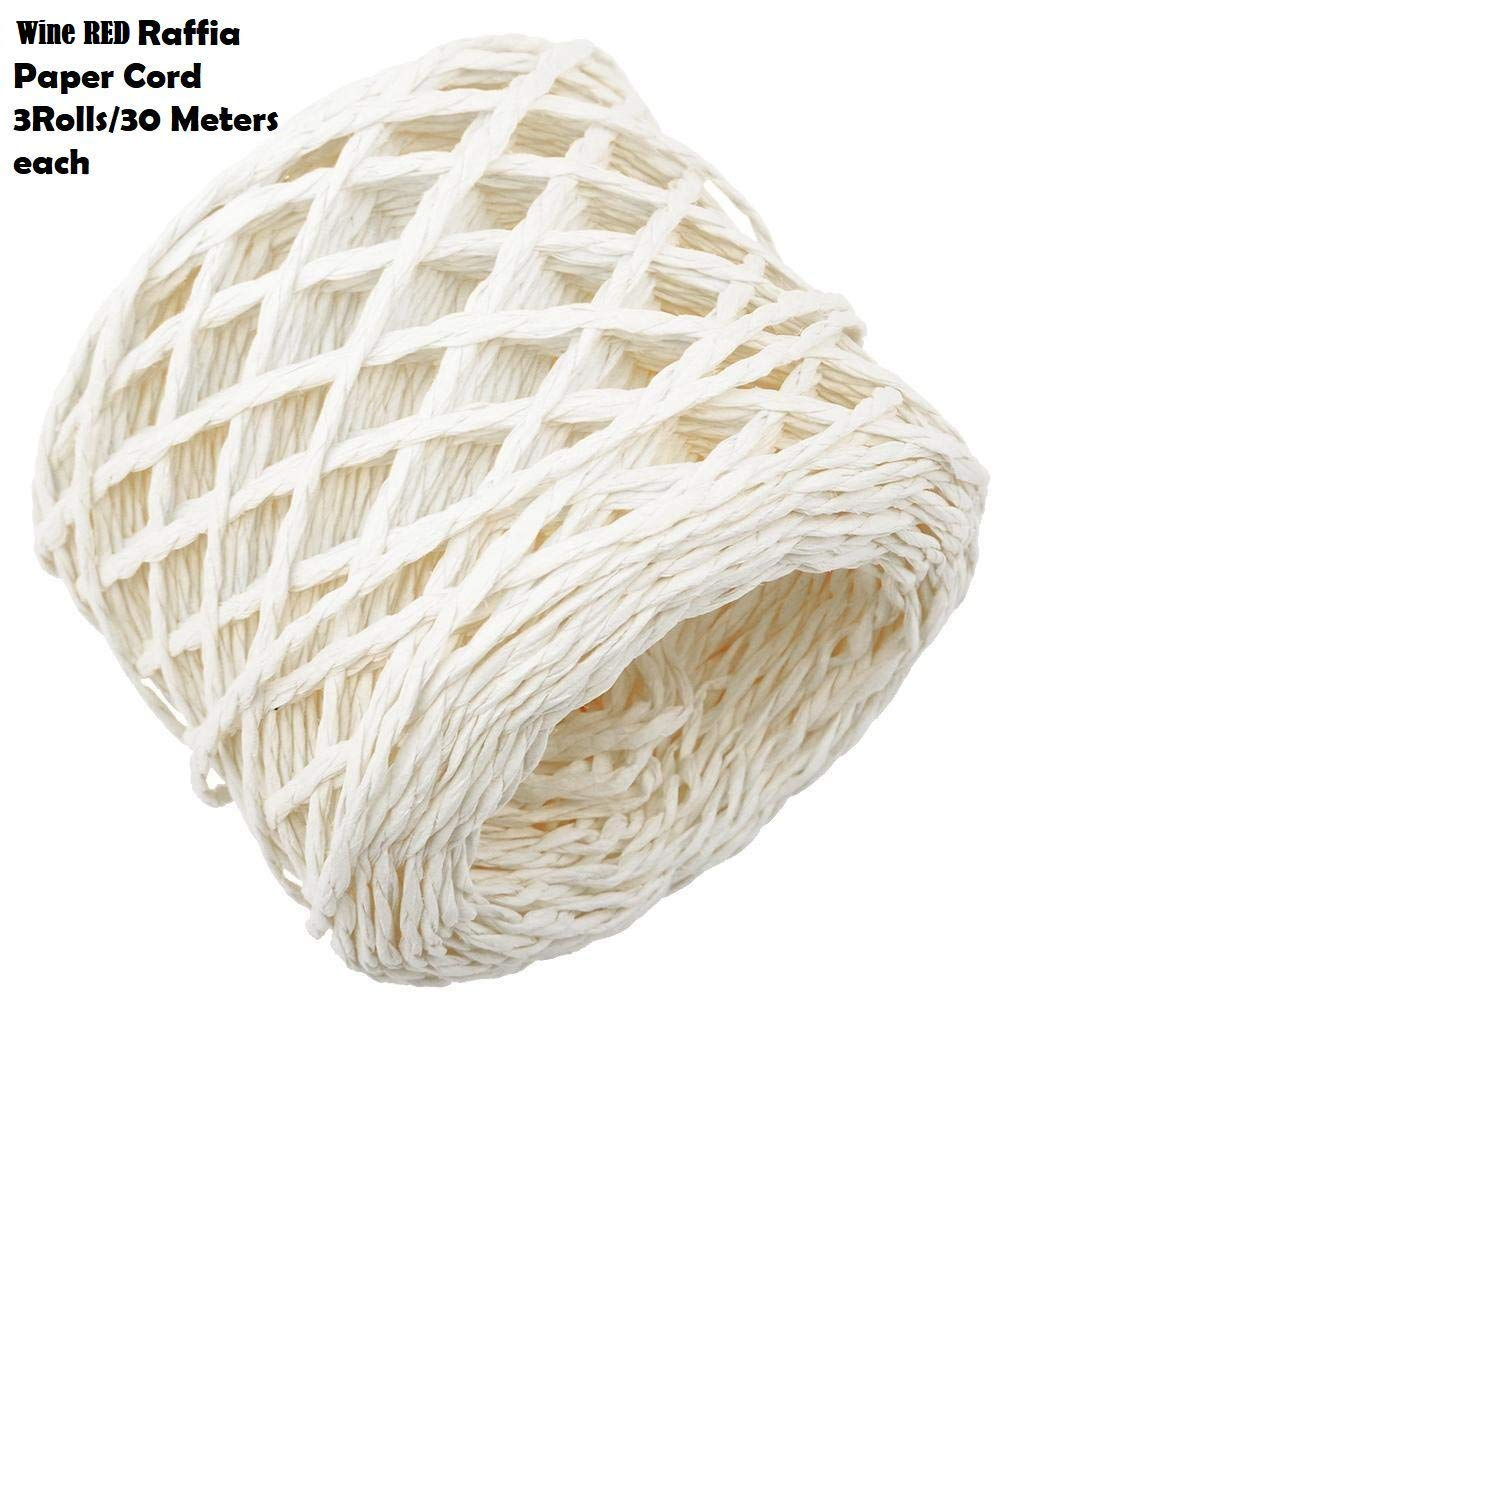 30 Metres Paper Raffia Cords Twine Ropes String for DIY Craft Scrapbook Material